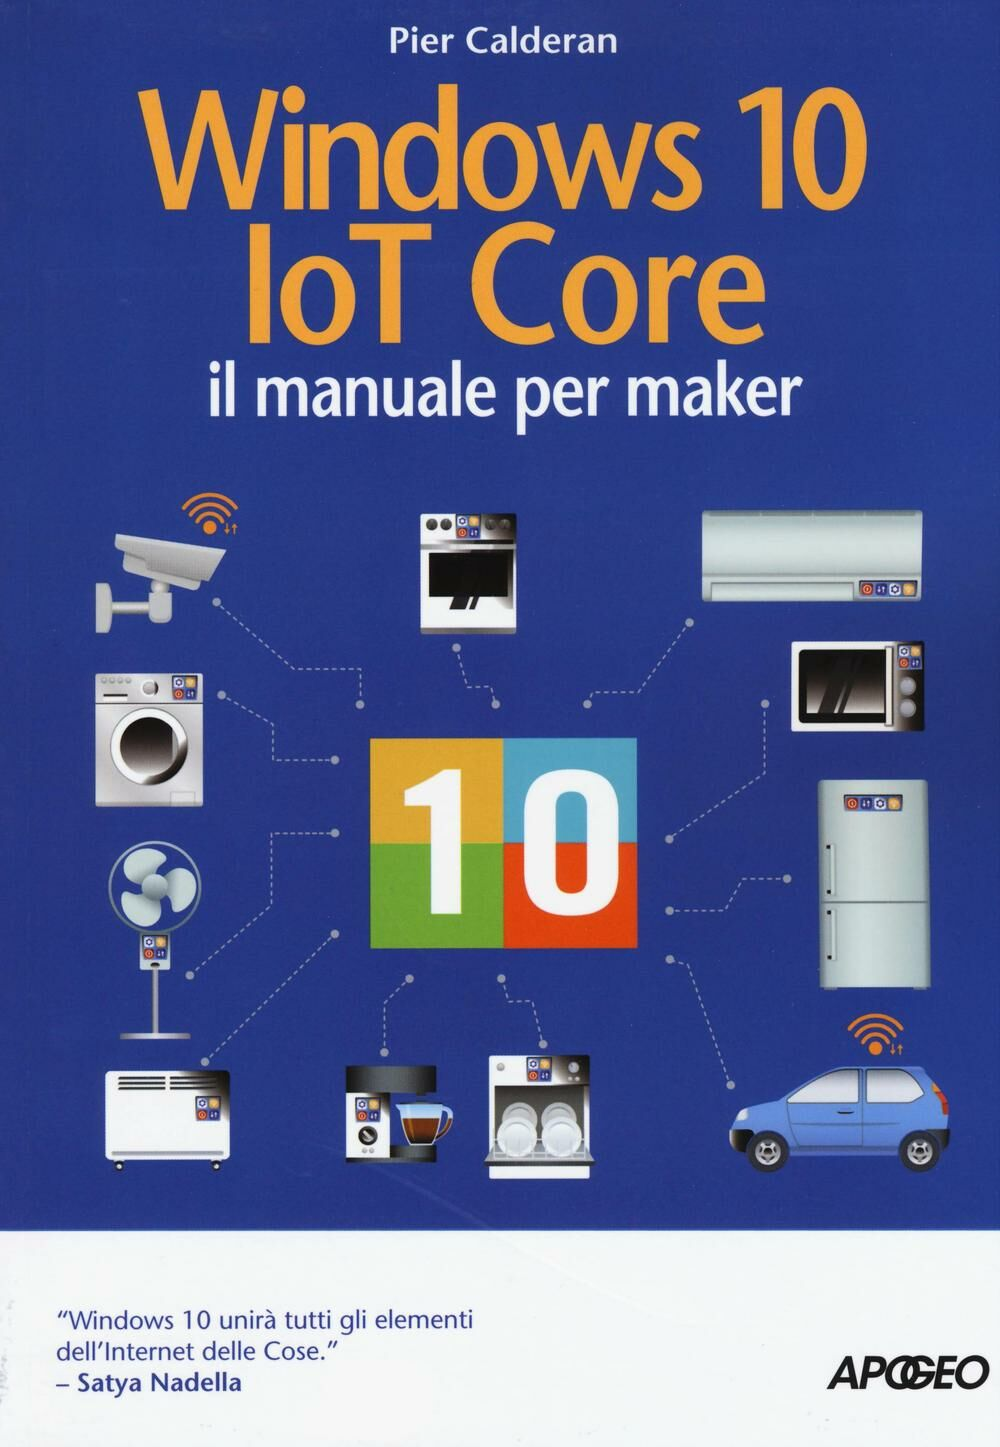 Windows 10 IoT core. Il manuale per maker